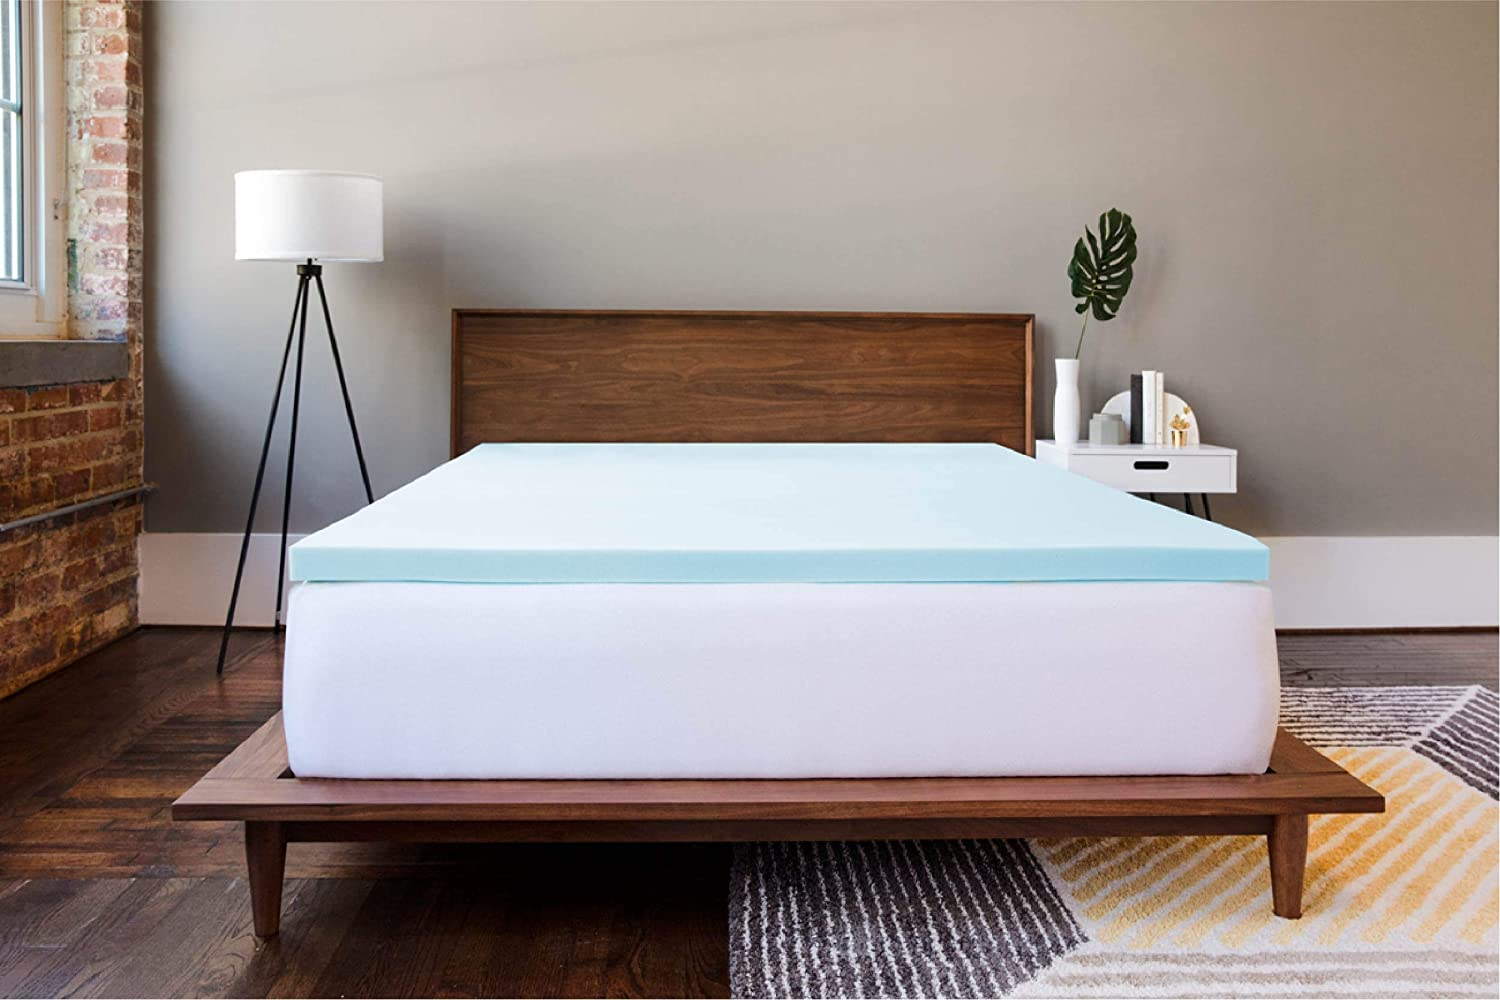 ViscoSoft 2 Inch Gel Memory Foam Full Mattress Topper